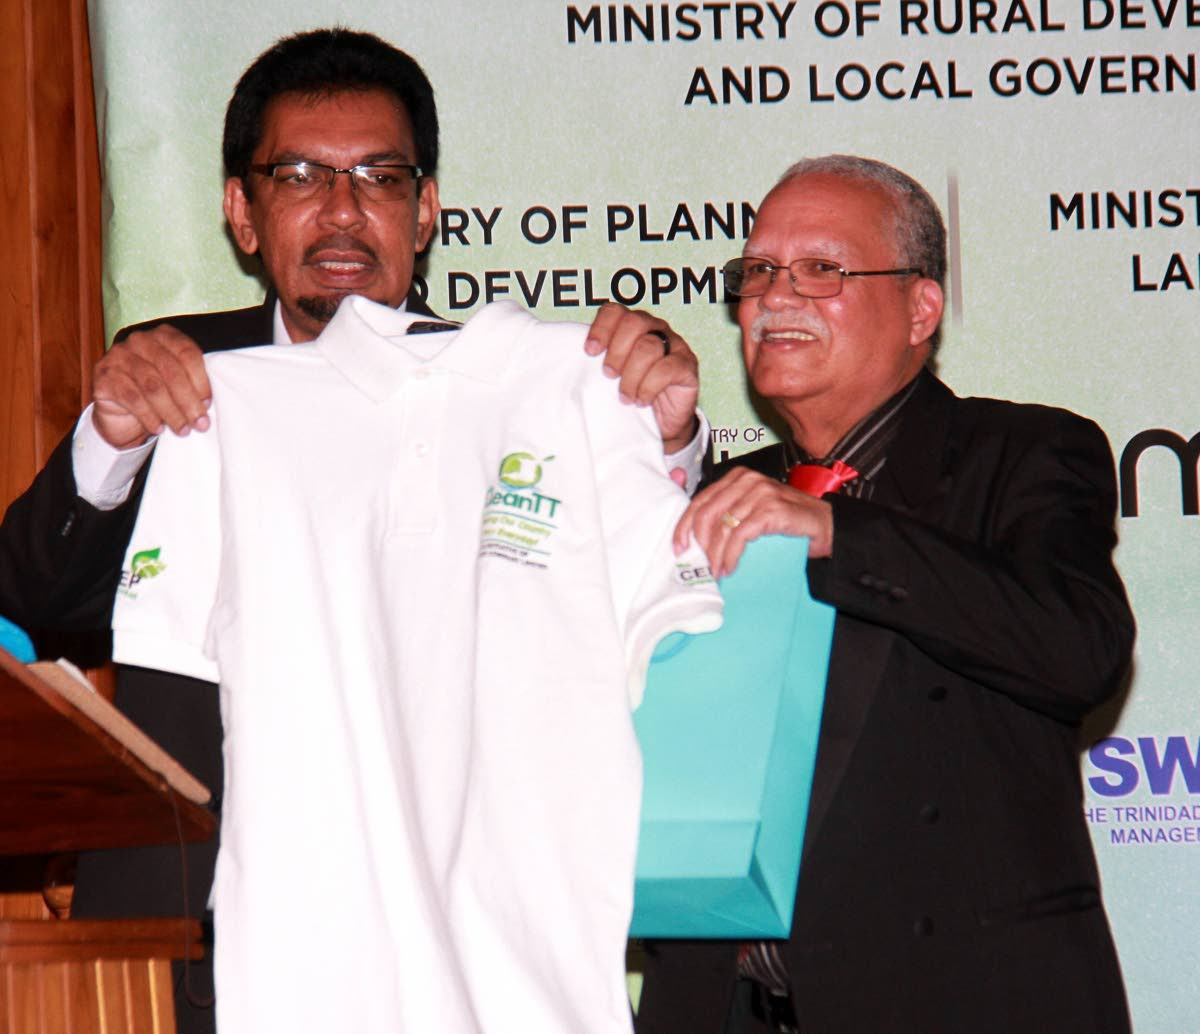 LOOK, IT'S NOT A BRIBE: Local Govt Minister Kazim Hosein, left, displays a CEPEP T-shirt given to him as a gift during the launch of CEPEP's Clean TT initiative last week in San Fernando. At right is CEPEP chairman Ashton Ford.